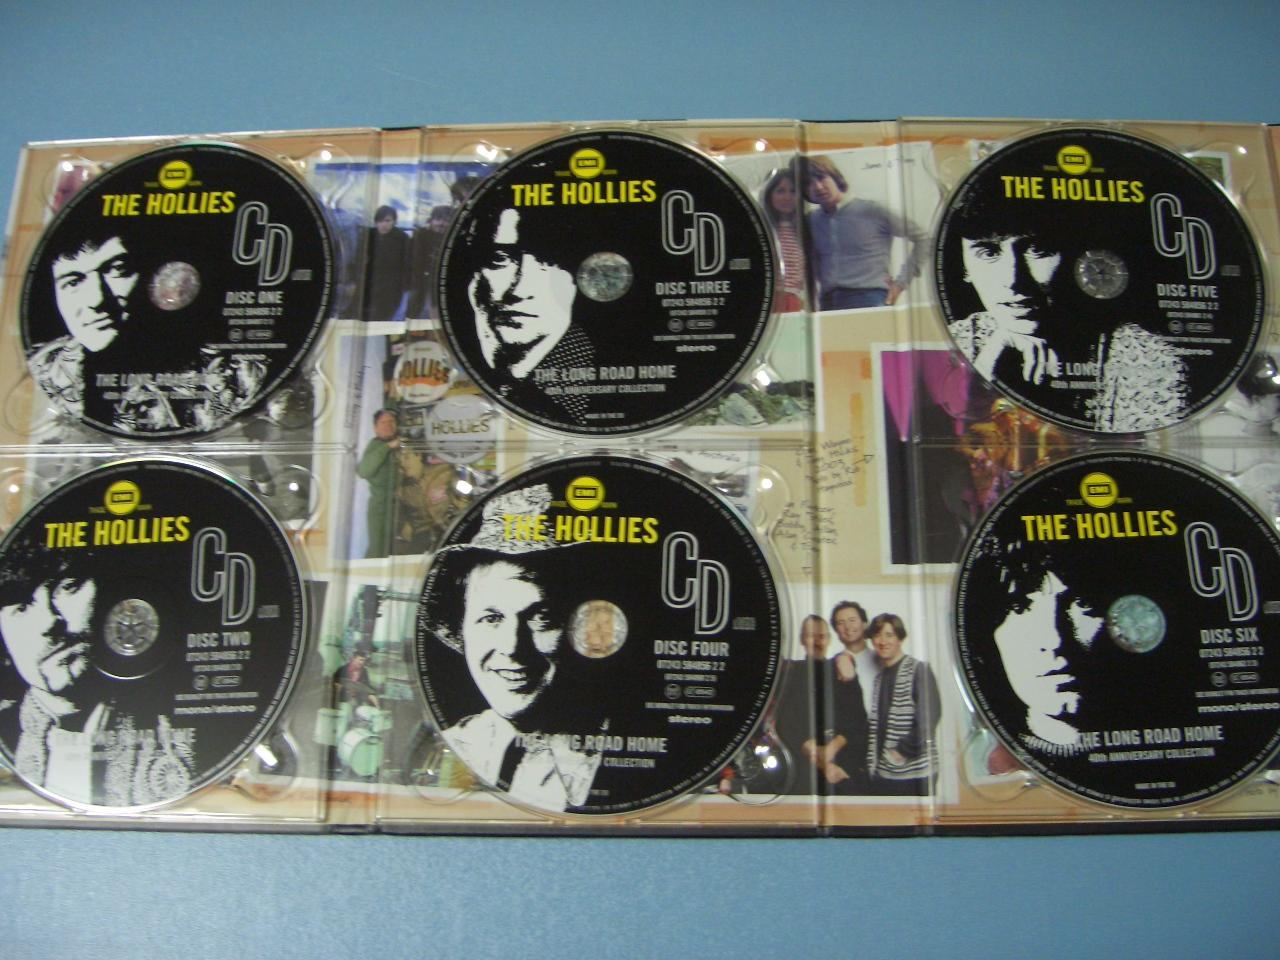 HOLLIES / The Long Road Home 1963-2003_c0062649_20531587.jpg